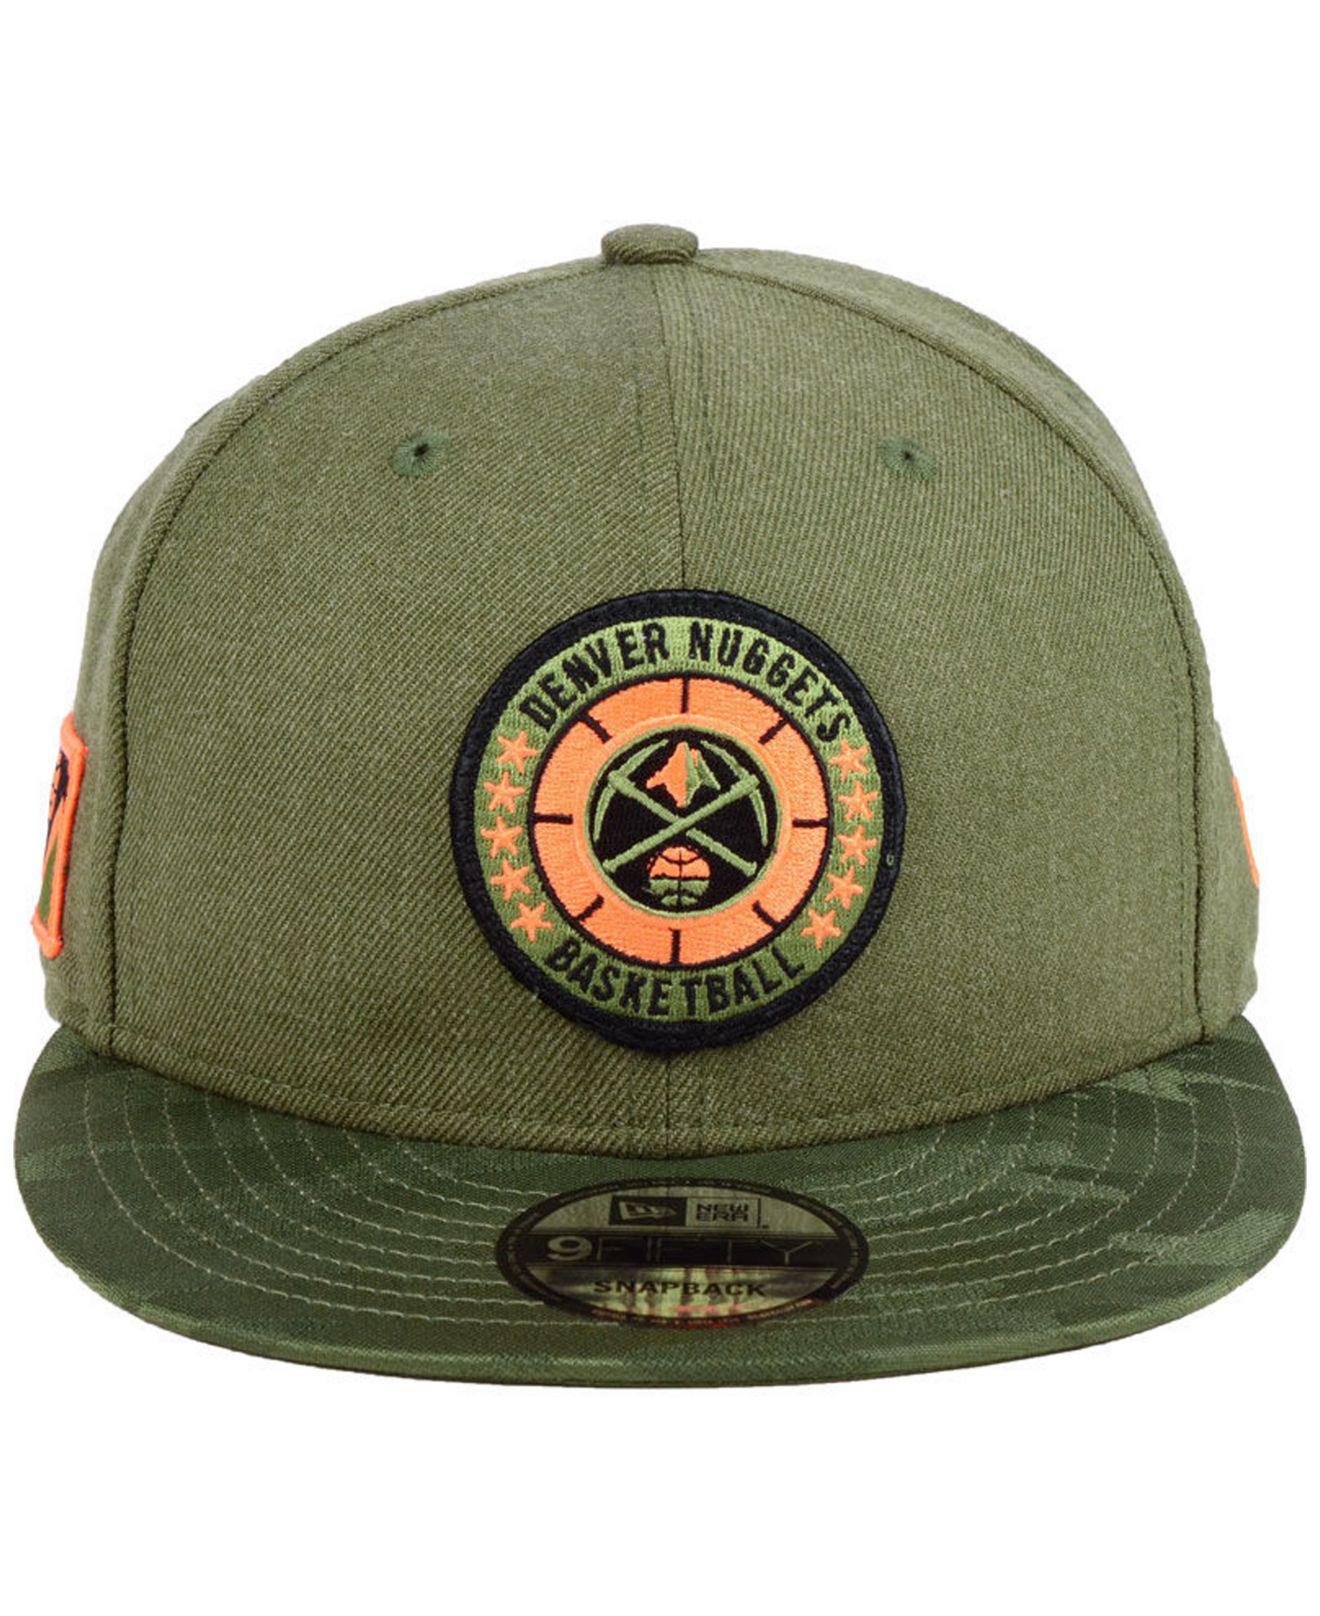 hot sale online ab68a 5f00e ... low price lyst ktz denver nuggets tip off 9fifty snapback cap in green  for men 04761